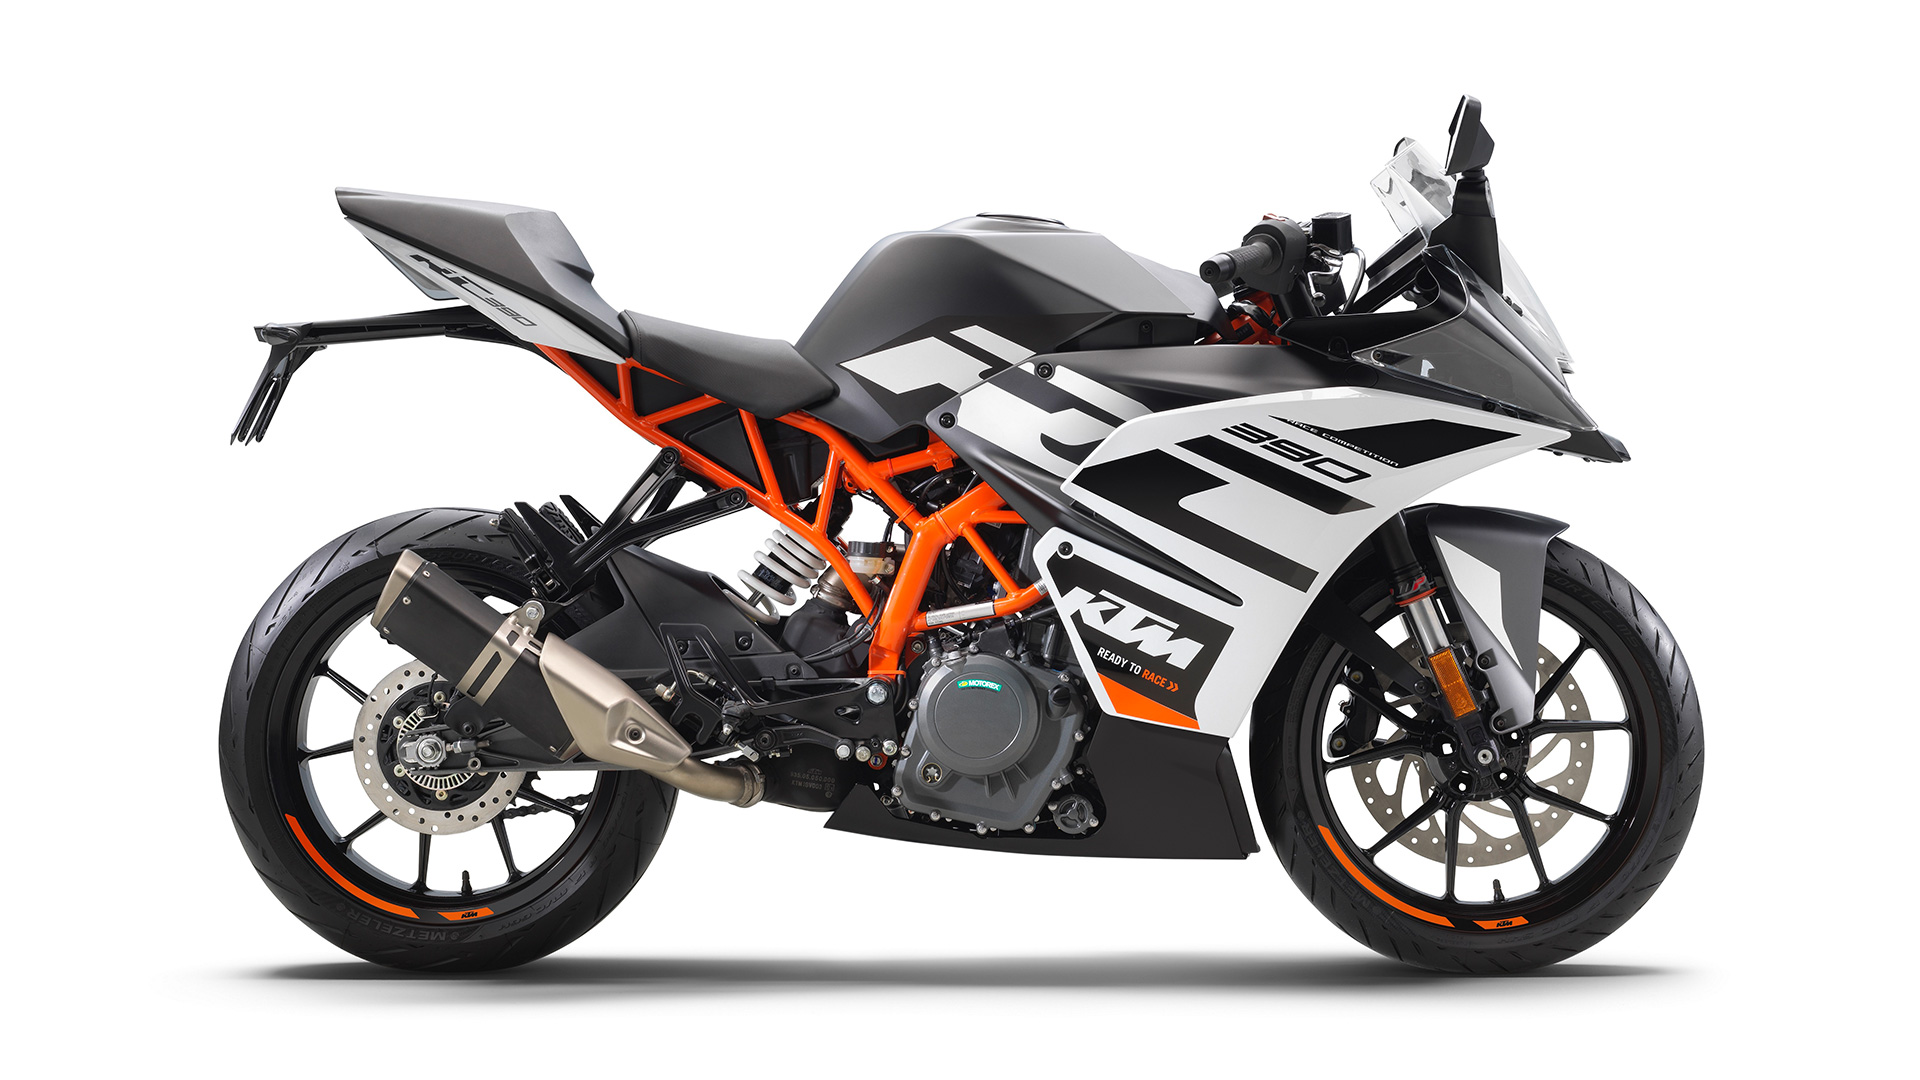 Ktm Rc 390 2020 Price Mileage Reviews Specification Gallery Overdrive